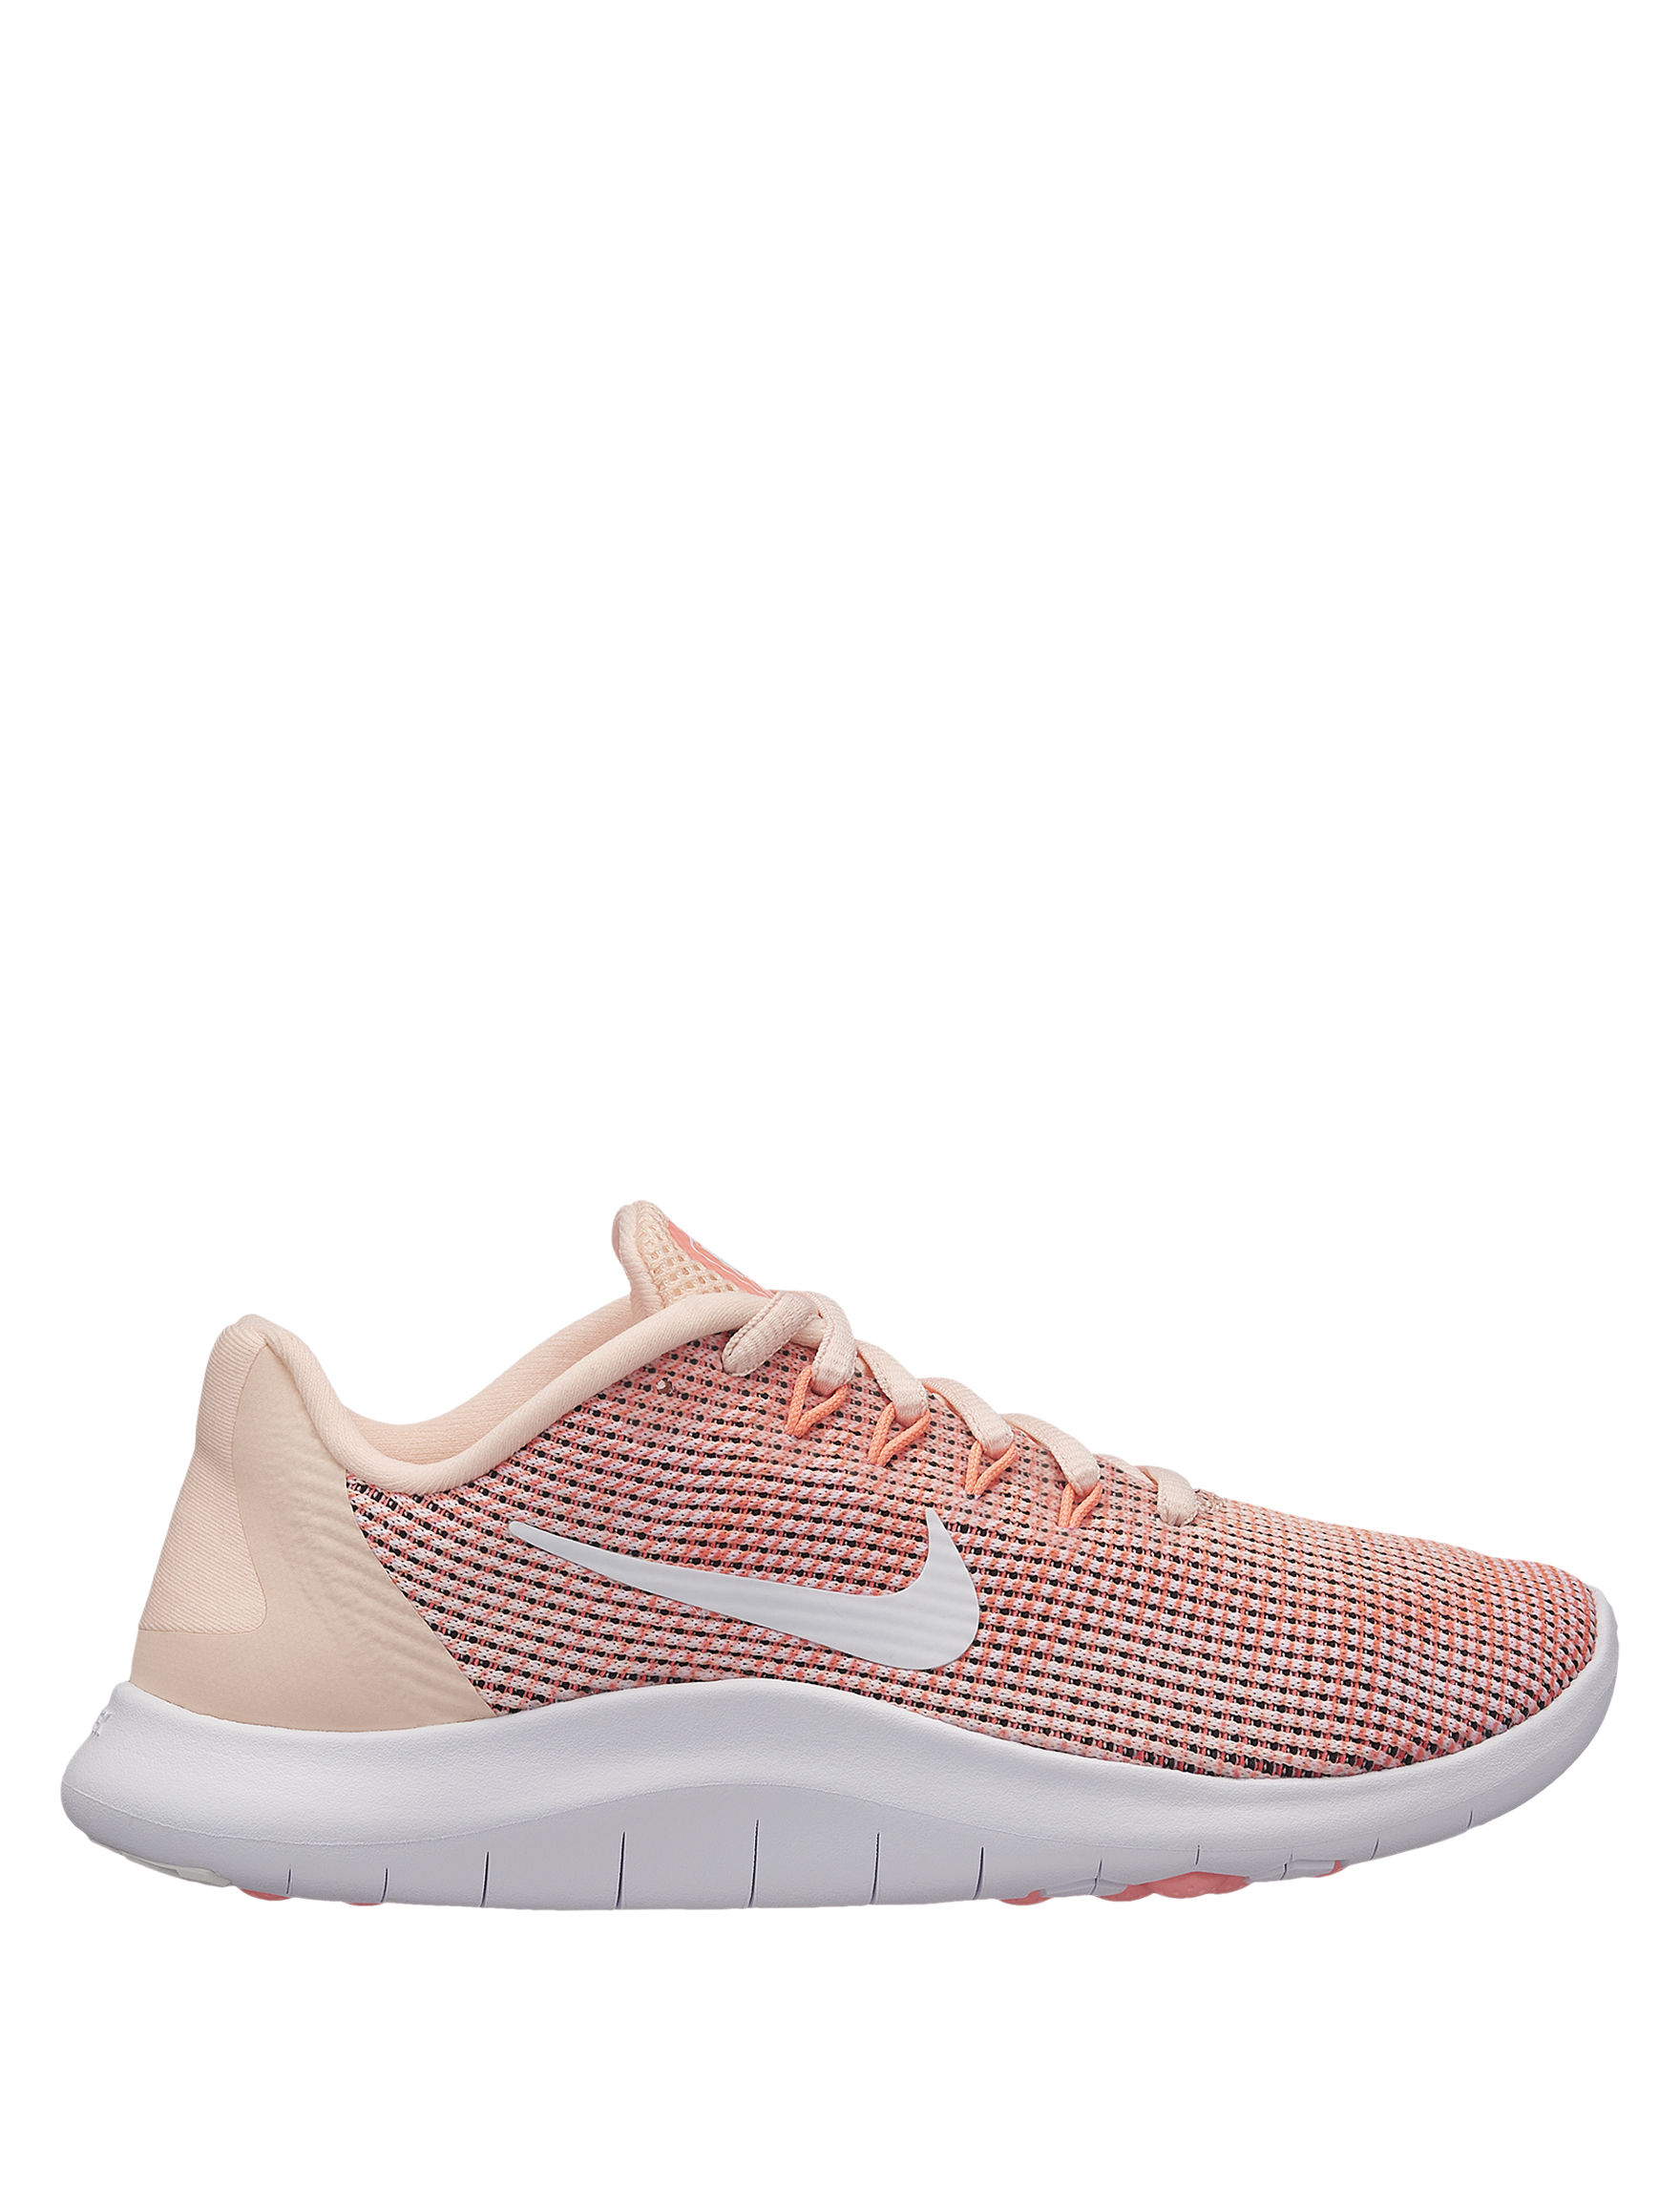 fd8e447c96 Nike Flex RN 2018 Running Shoes - Girls 4-6 | Stage Stores